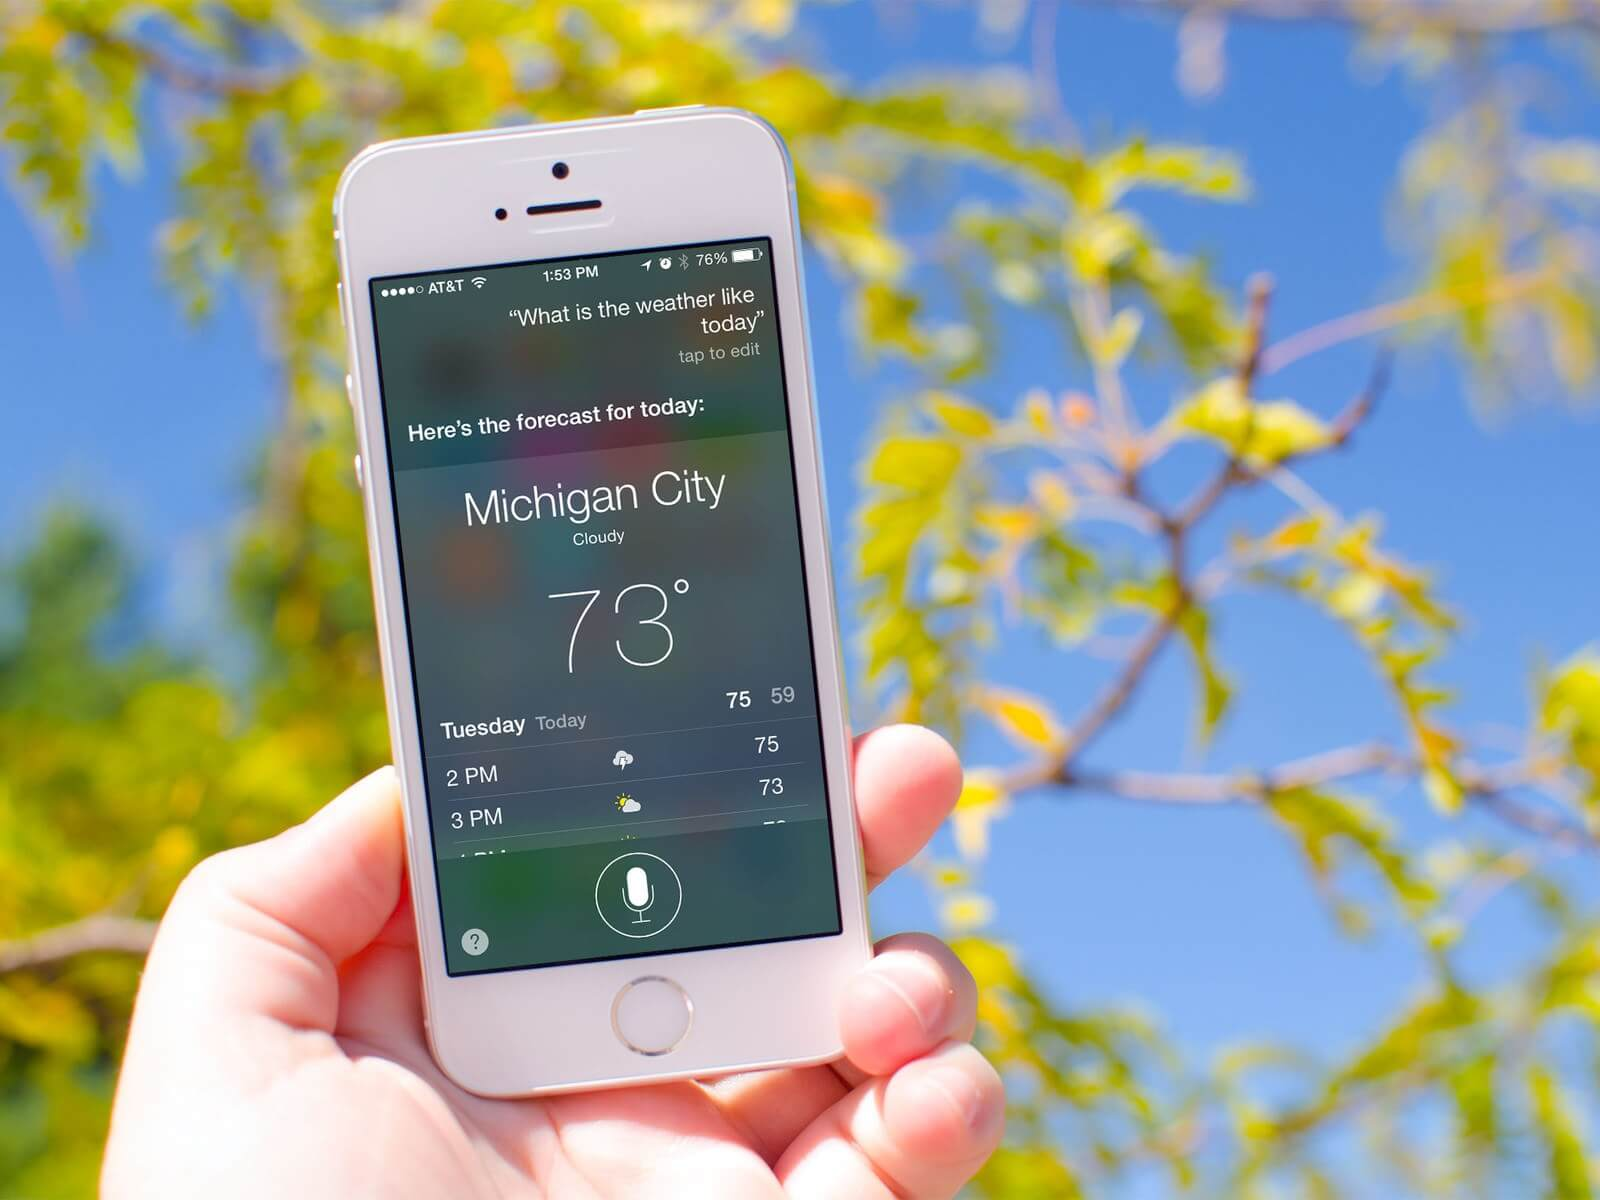 Lawsuit: Popular Weather App Deceived Users